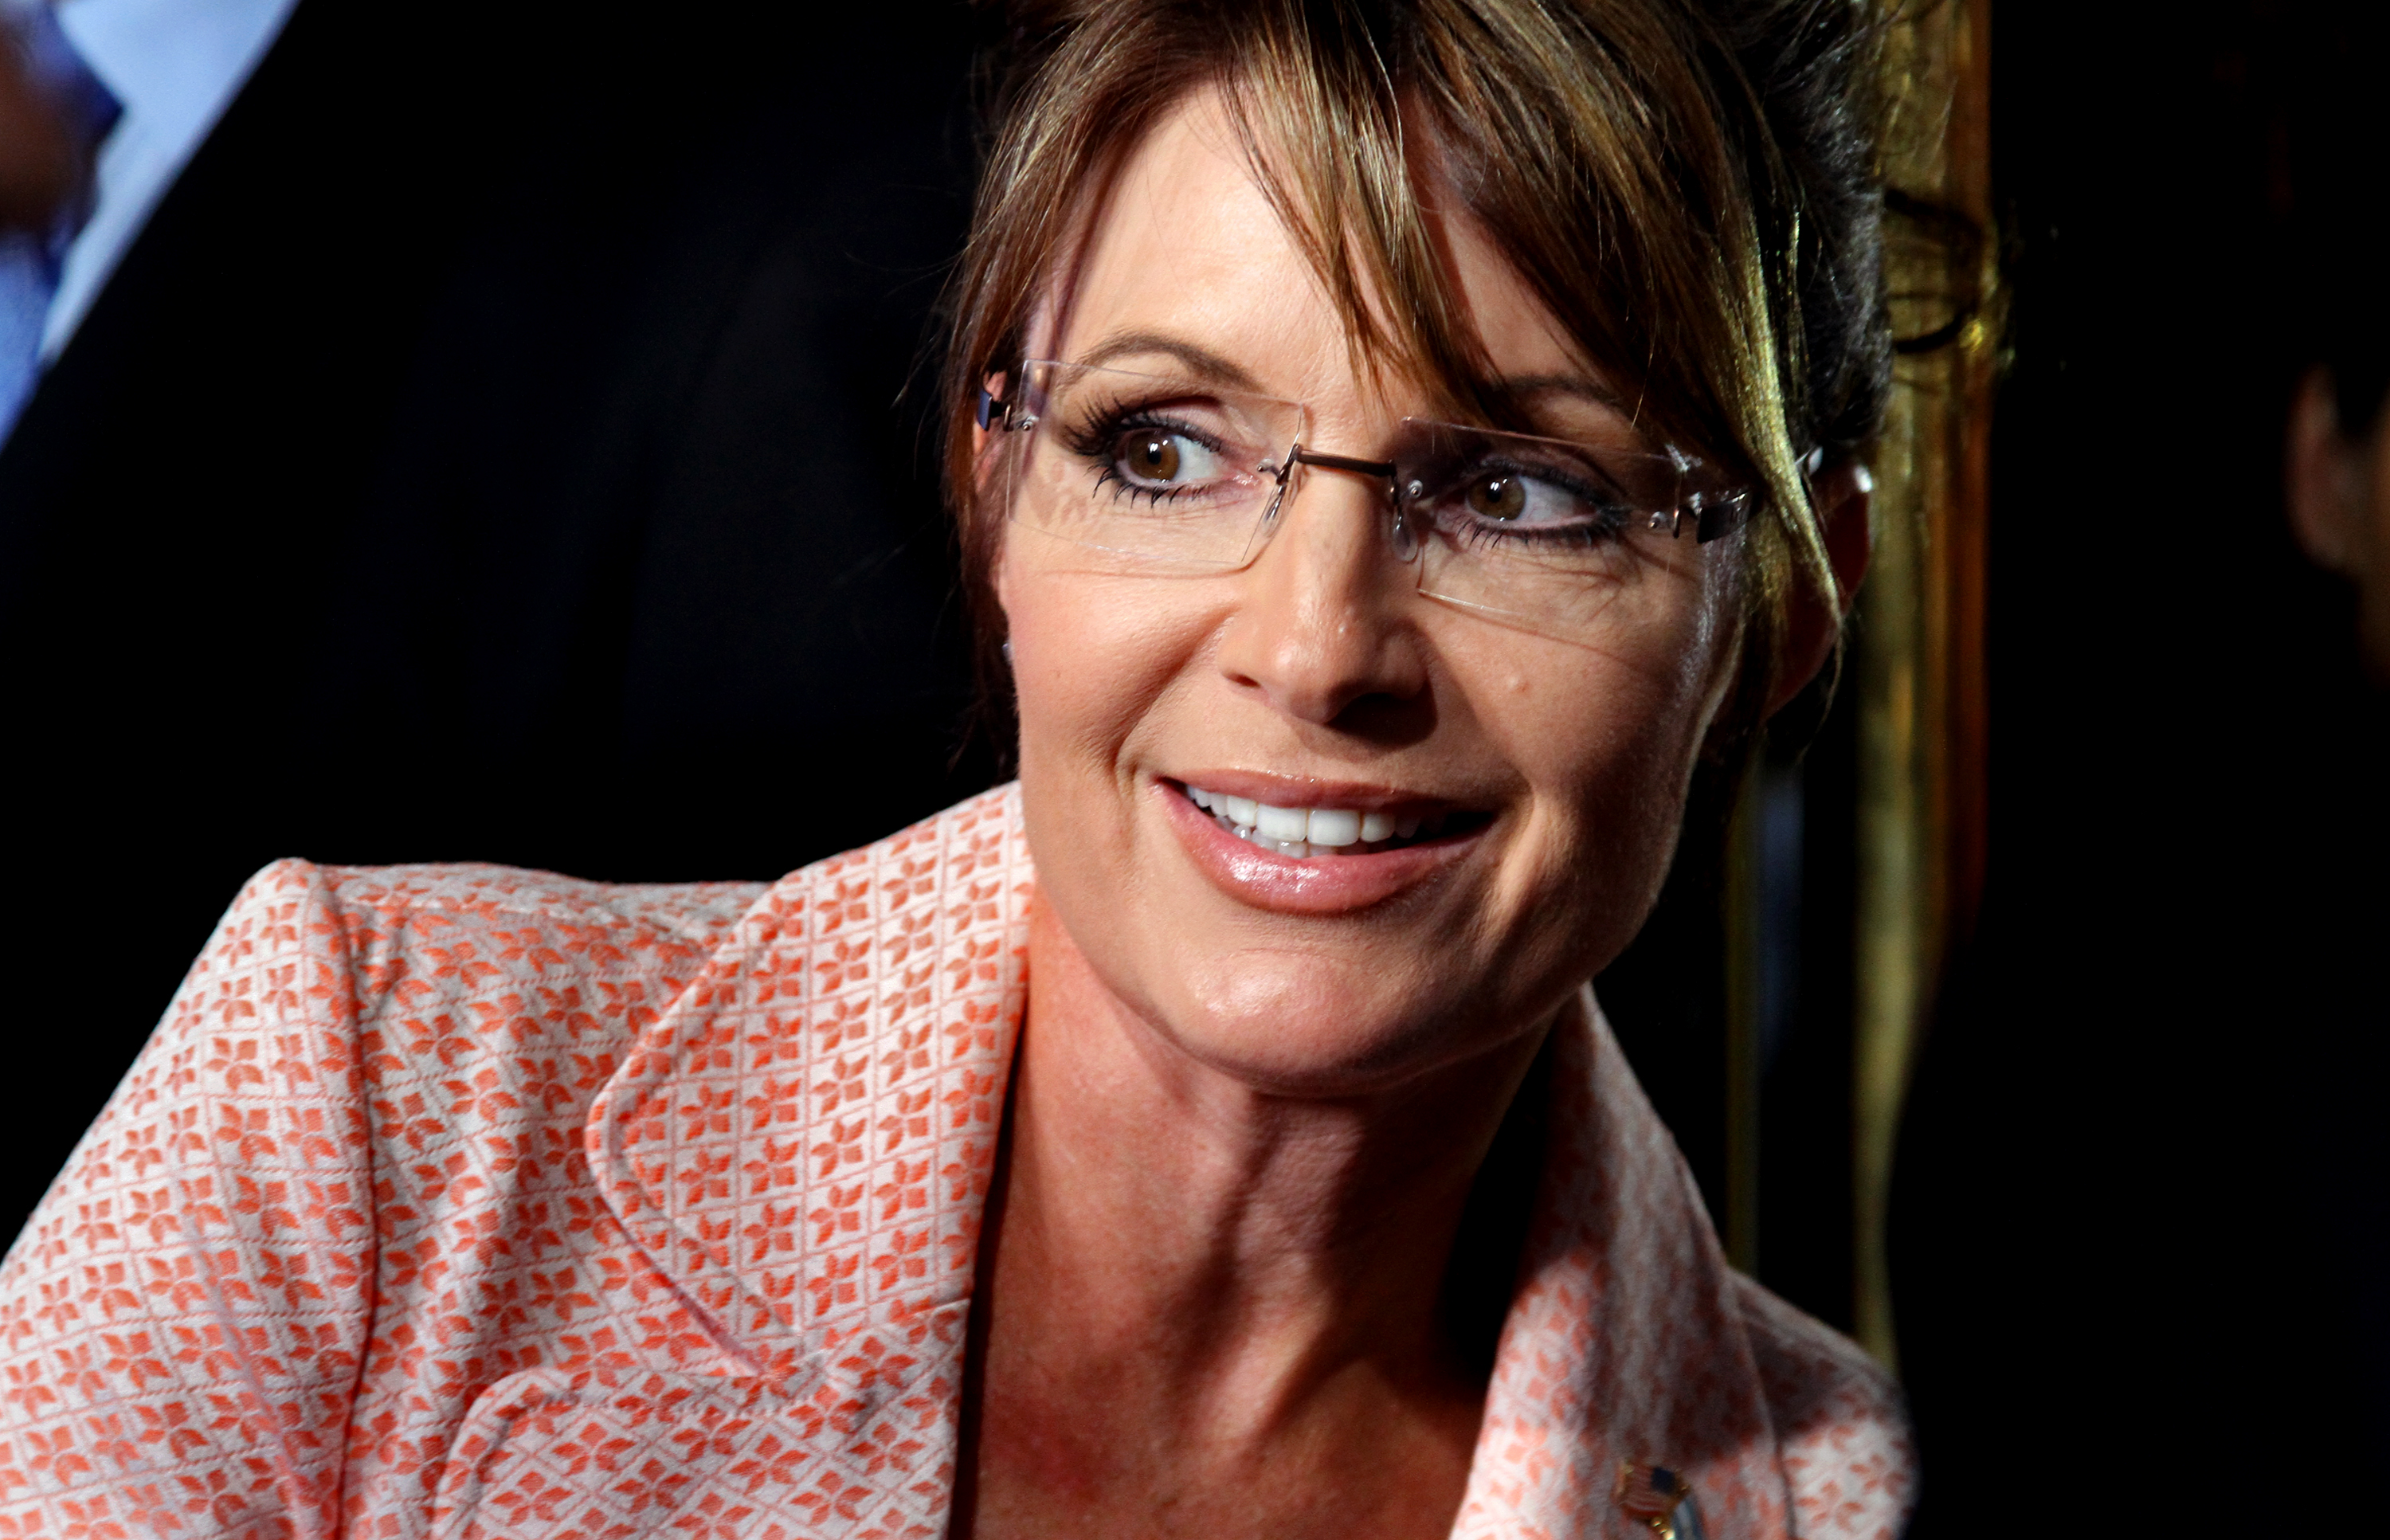 sarah palin 2017 newssarah palin young, sarah palin eminem, sarah palin russia, sarah palin 2012, sarah palin wiki, sarah palin tea party, sarah palin vs lady gaga, sarah palin net worth, sarah palin snl, sarah palin speech, sarah palin putin, sarah palin clothes scandal, sarah palin bathing suit, sarah palin senator o'biden, sarah palin 2017 news, sarah palin alec baldwin, sarah palin iq, sarah palin news site, sarah palin network, sarah palin latest news